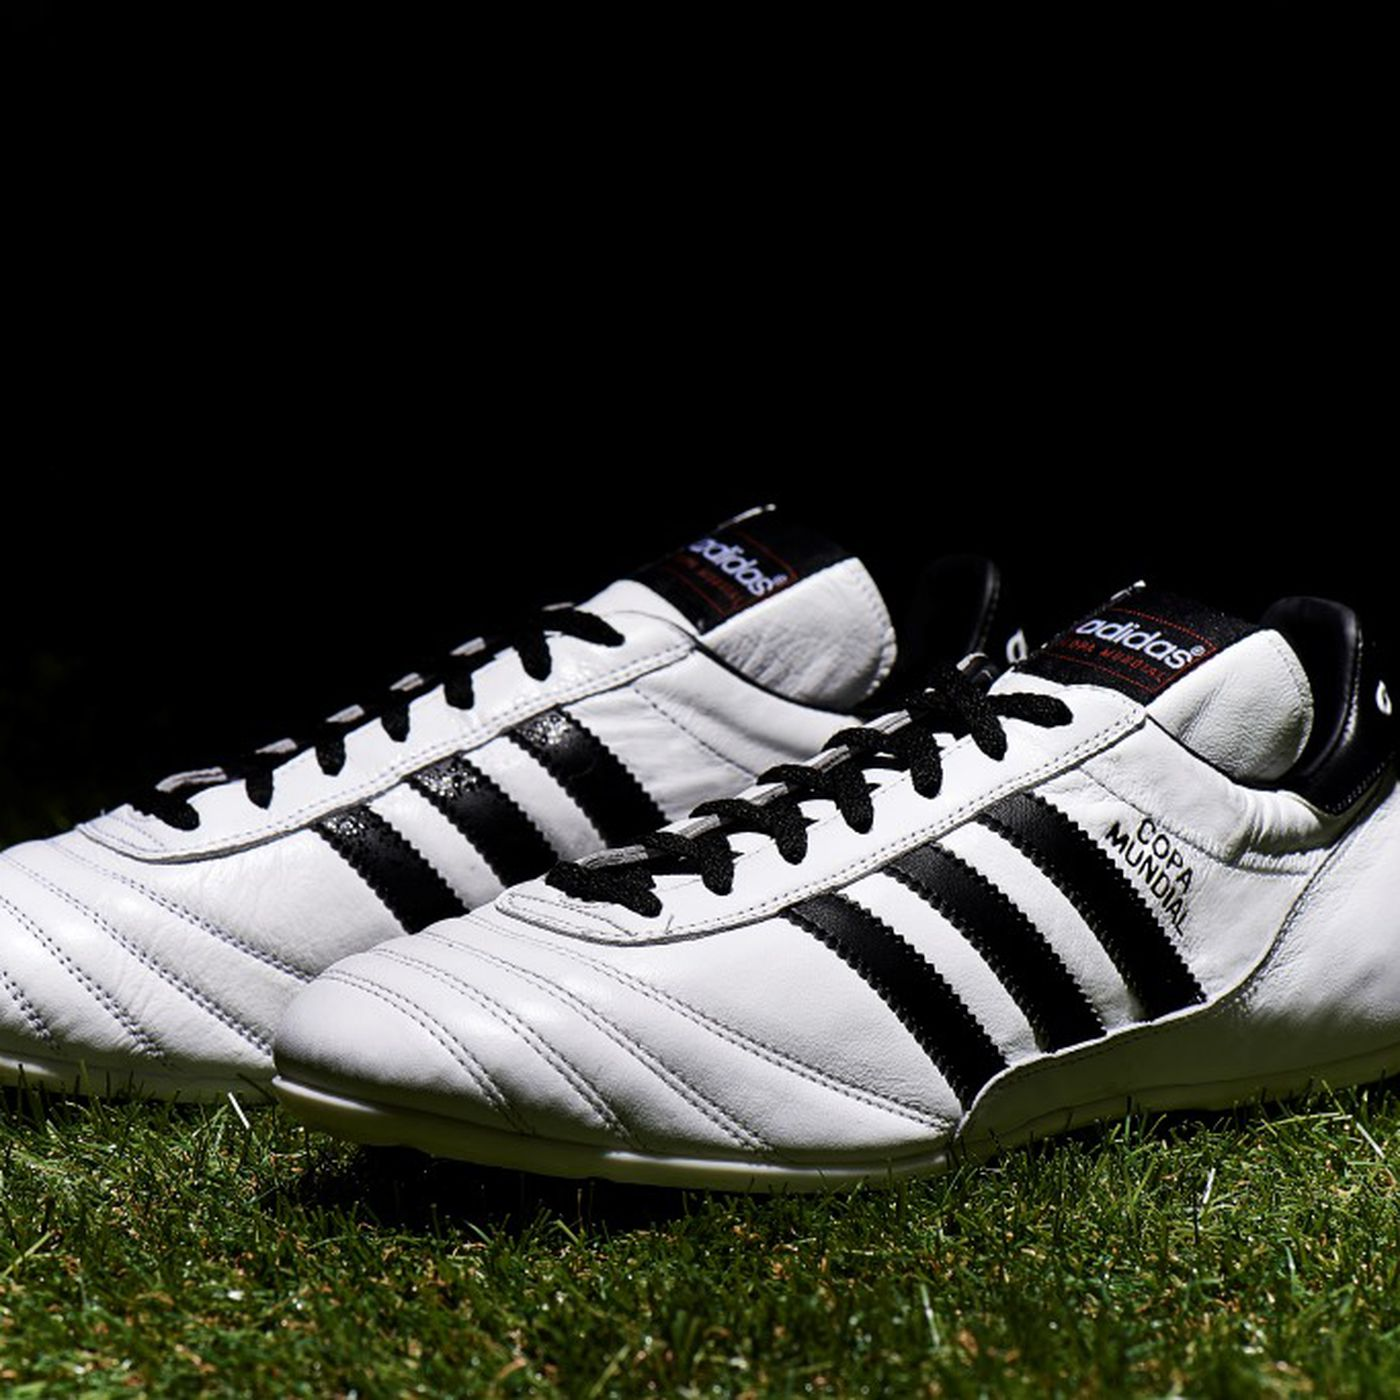 Intervenir cliente analizar  adidas flips the switch on a classic, announces white Copa Mundial boot -  SBNation.com